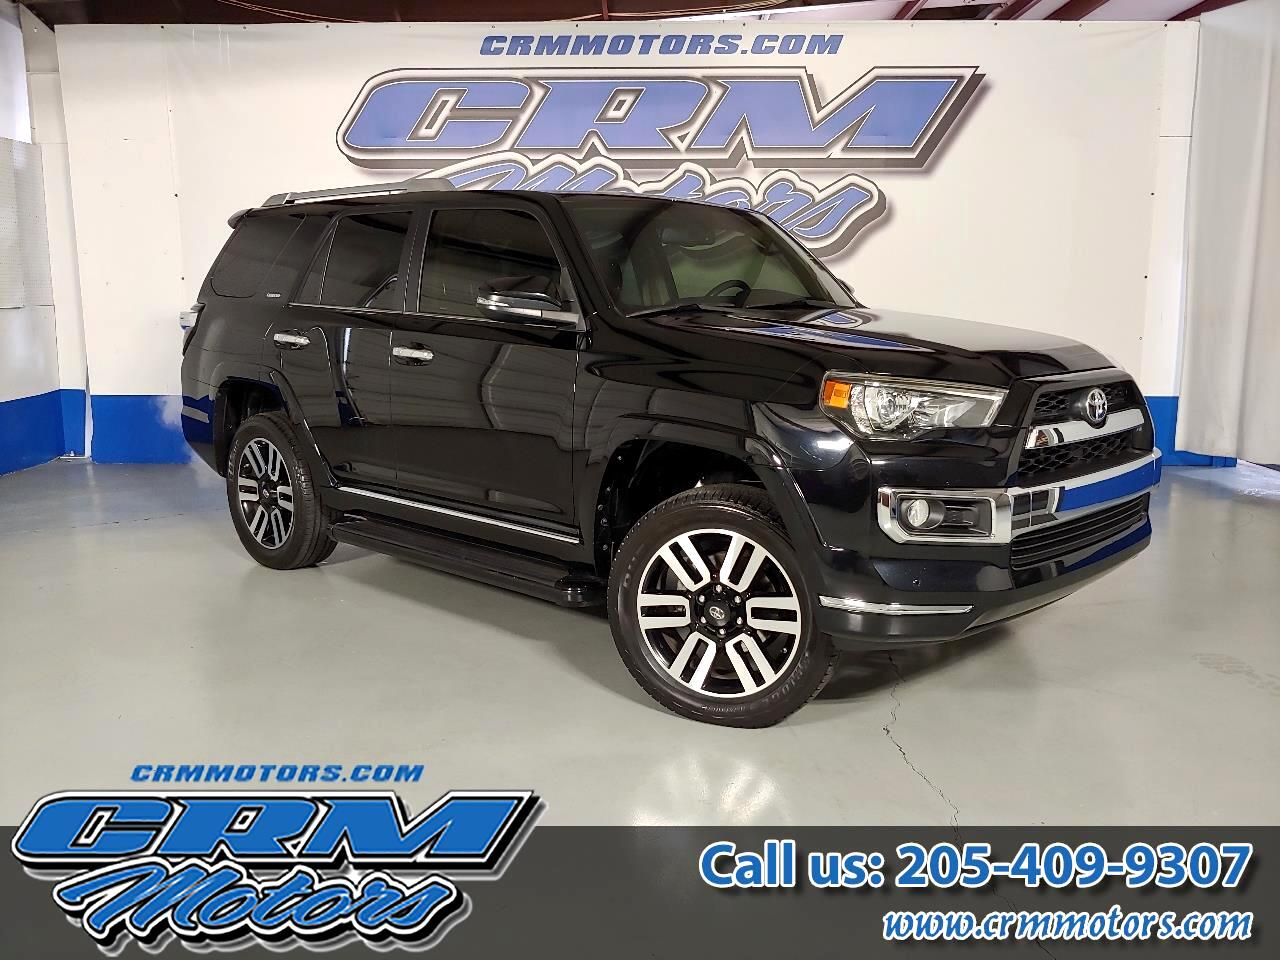 2014 Toyota 4Runner 4WD LIMITED V6, LEATHER, SUNROOF, PREMIUM WHEELS!